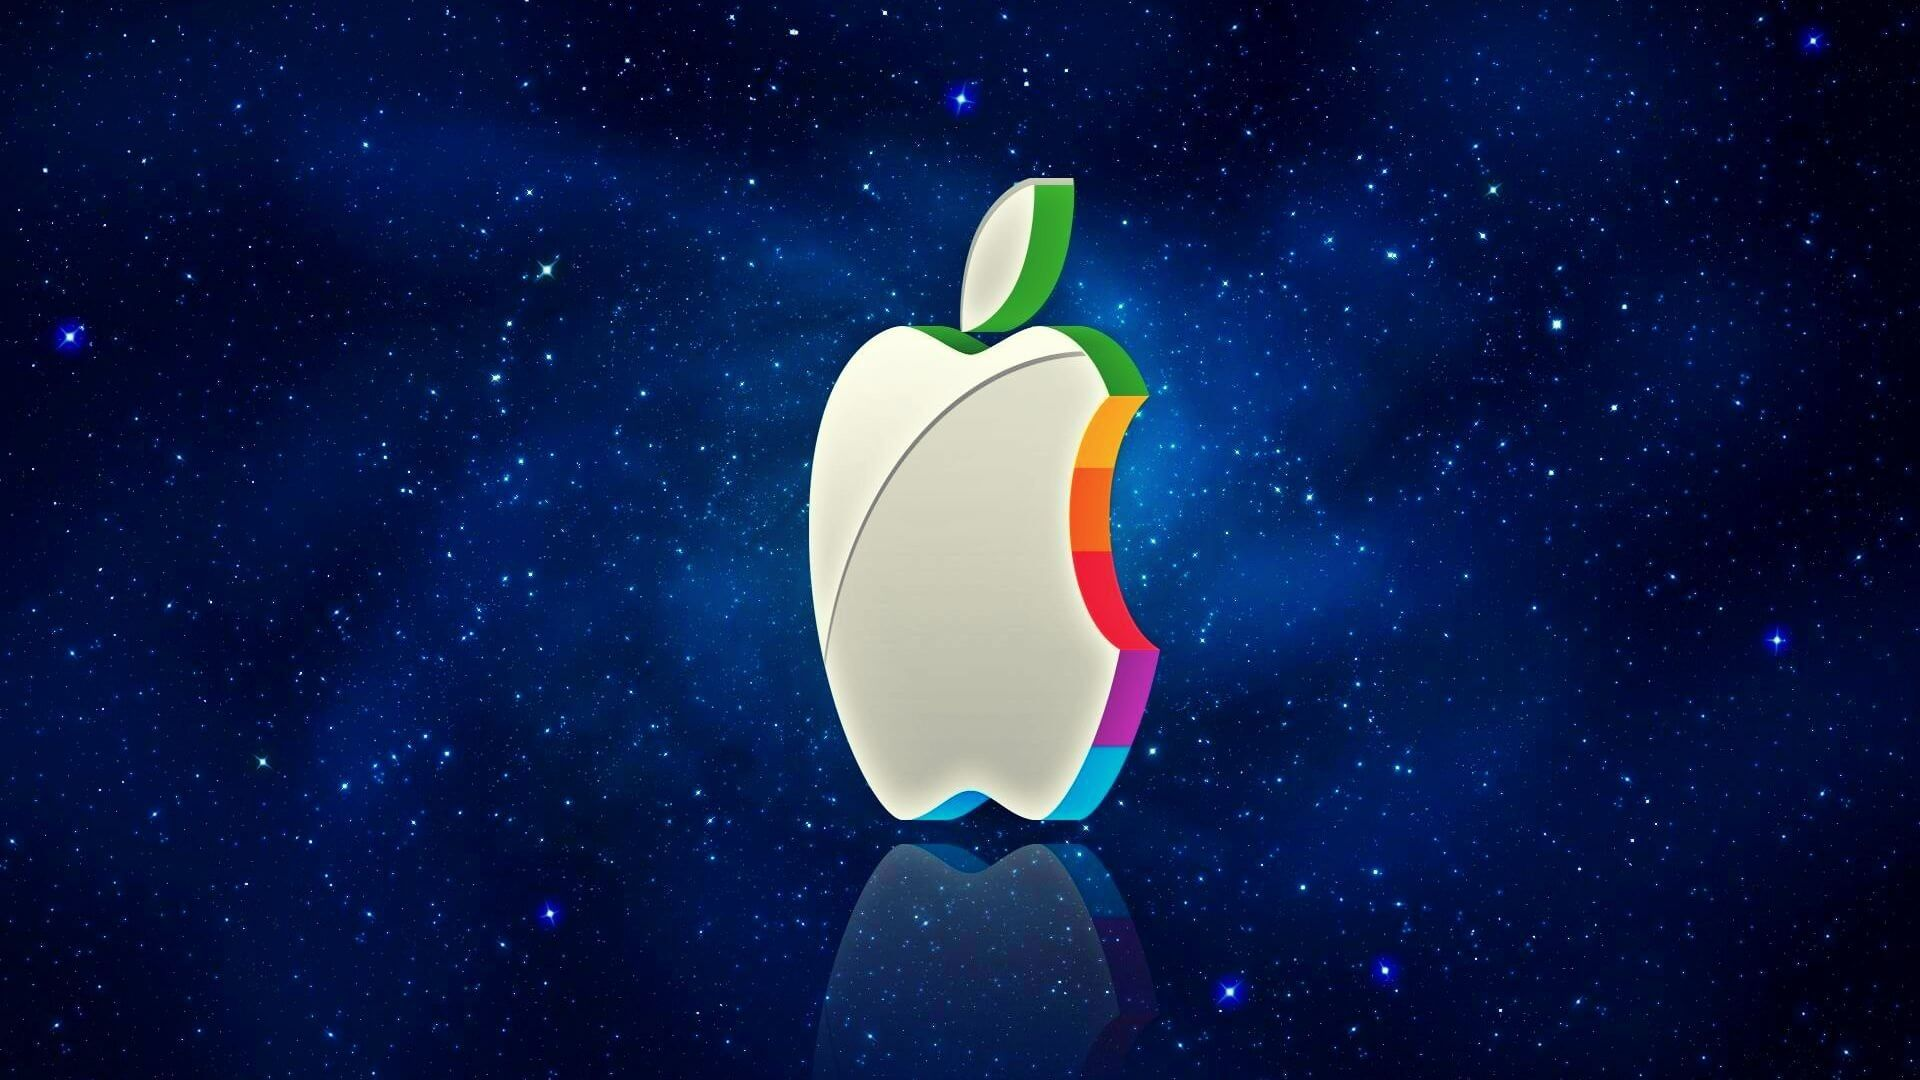 mac-wallpapers-desktop-apple-wallpaper-cool.jpg